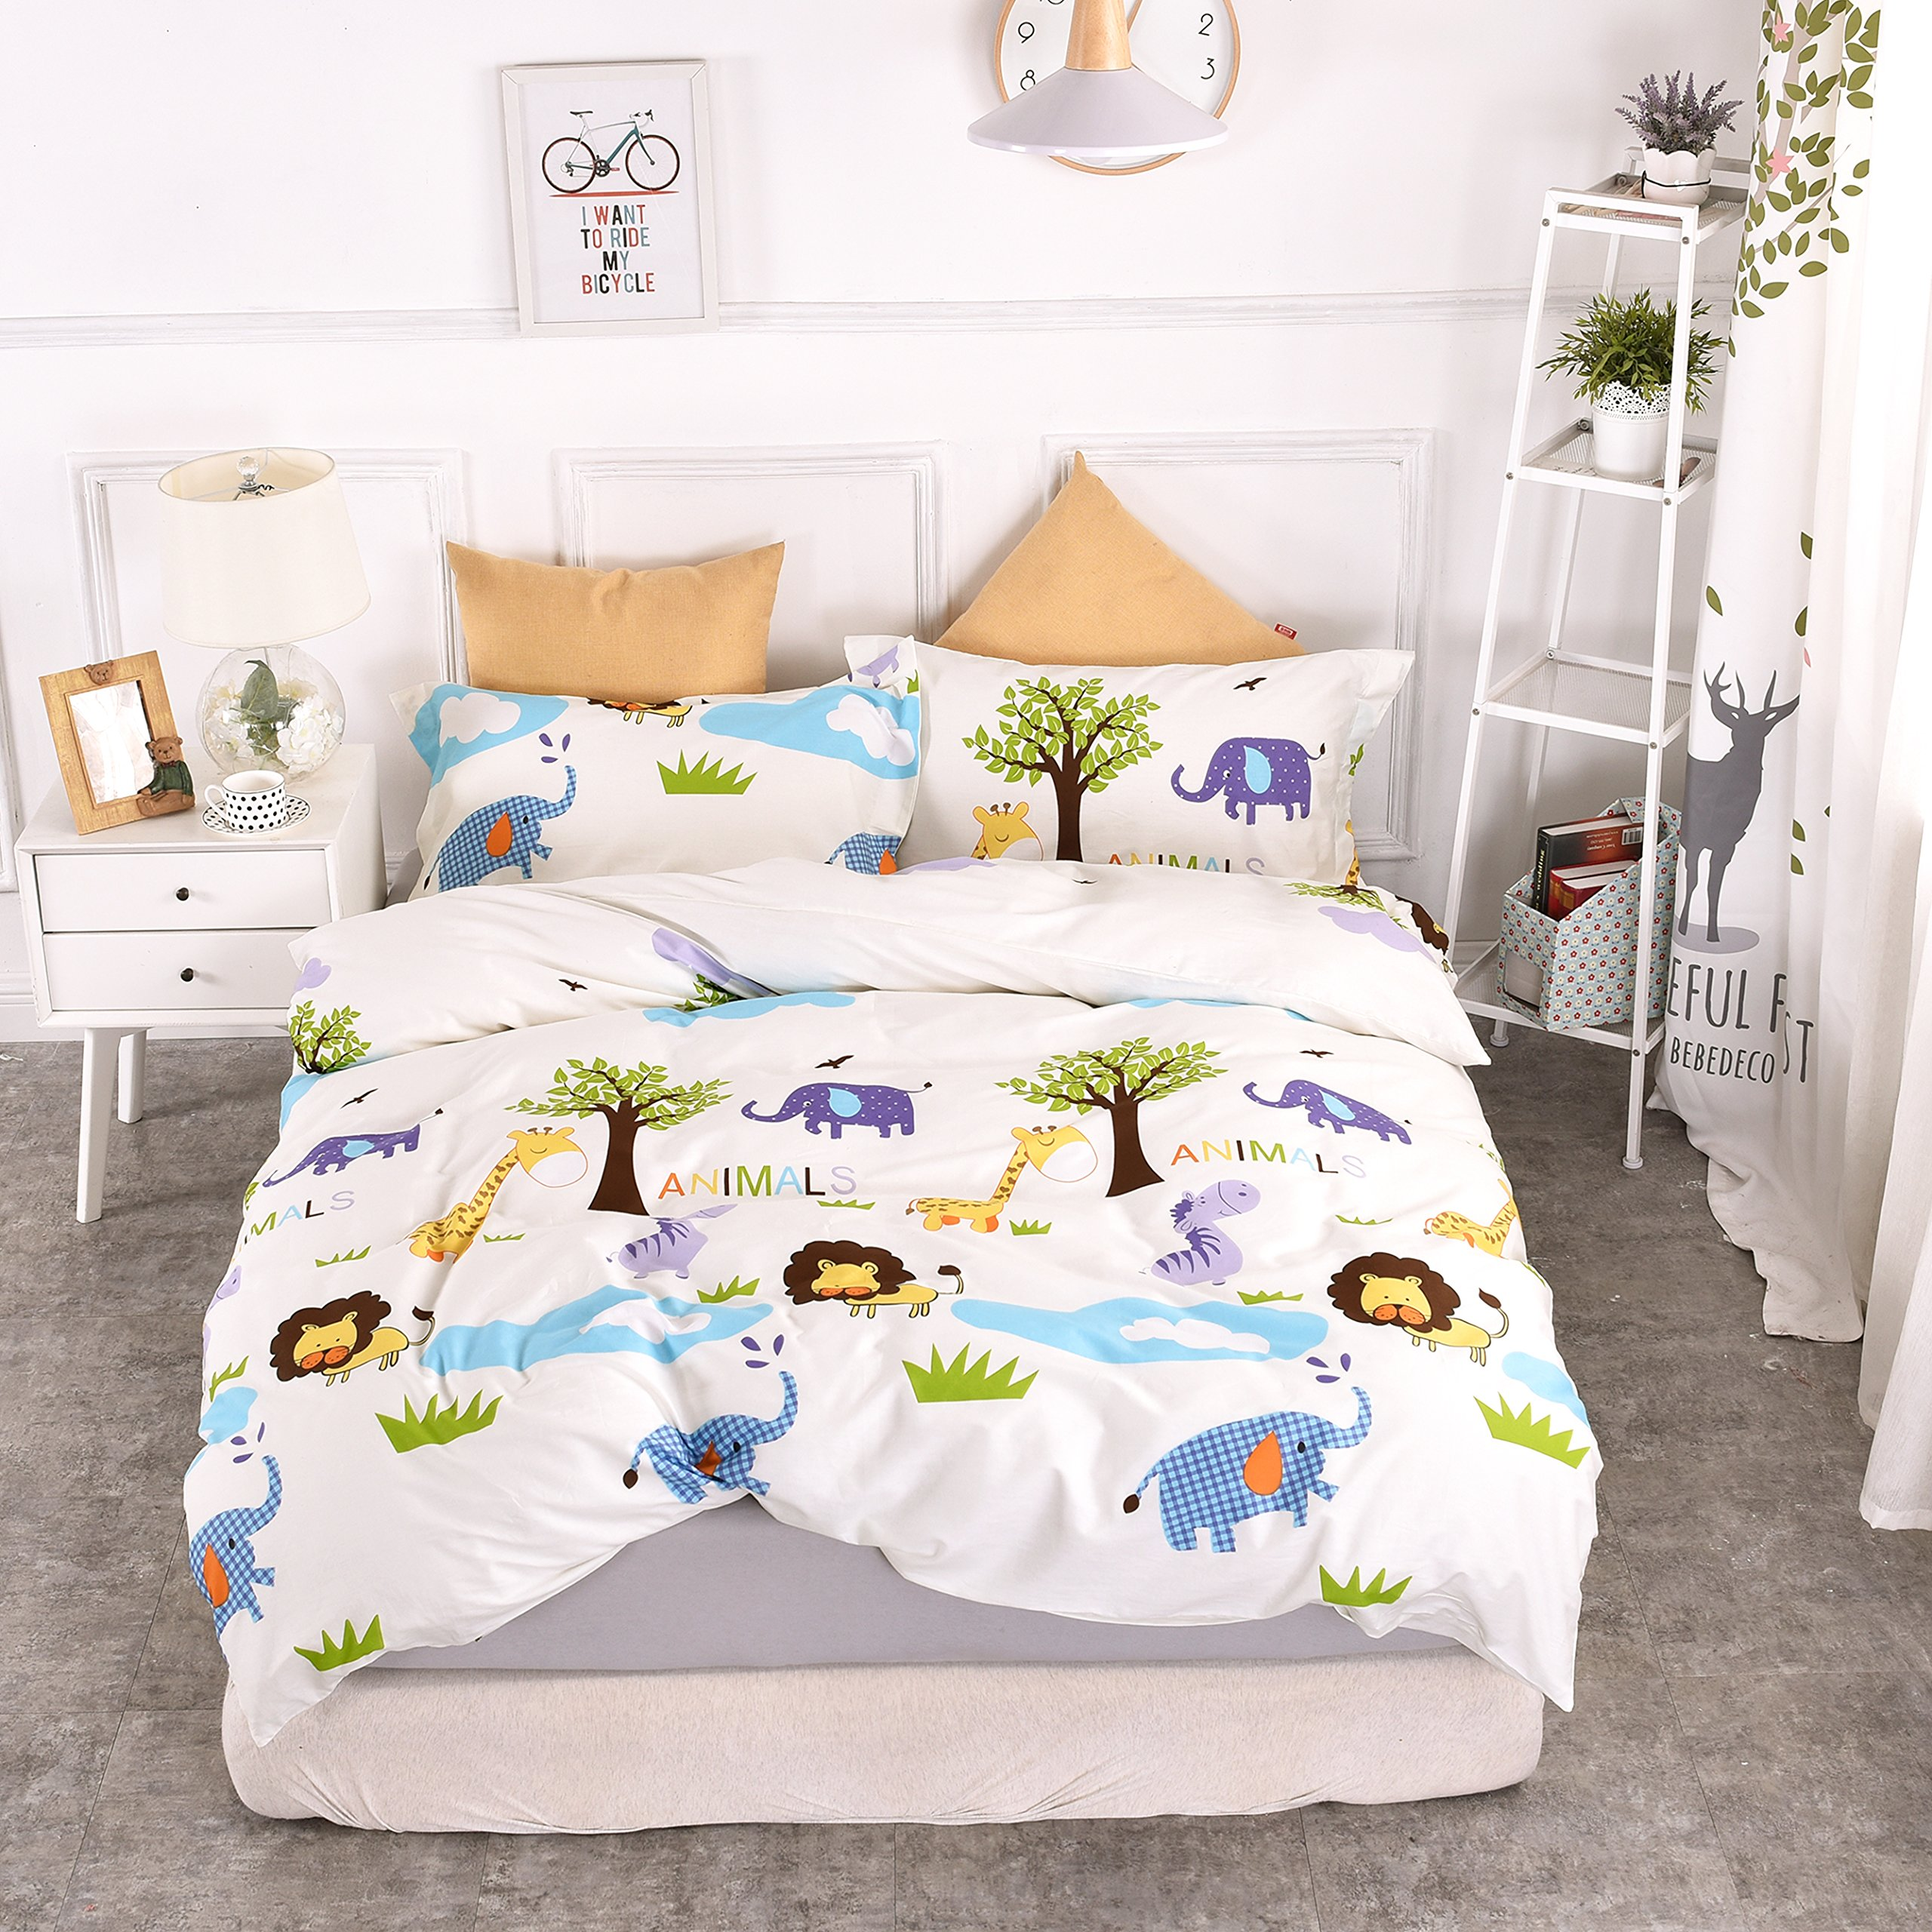 Chesterch Prevoster Kids Duvet Cover Set 100% Organic Cotton,Cartoon animals Cute Bedding Boys Reversible Comfortable,3 Pieces Comforter Cover and 2 Pillowcases,Twin Size by Chesterch Prevoster (Image #8)